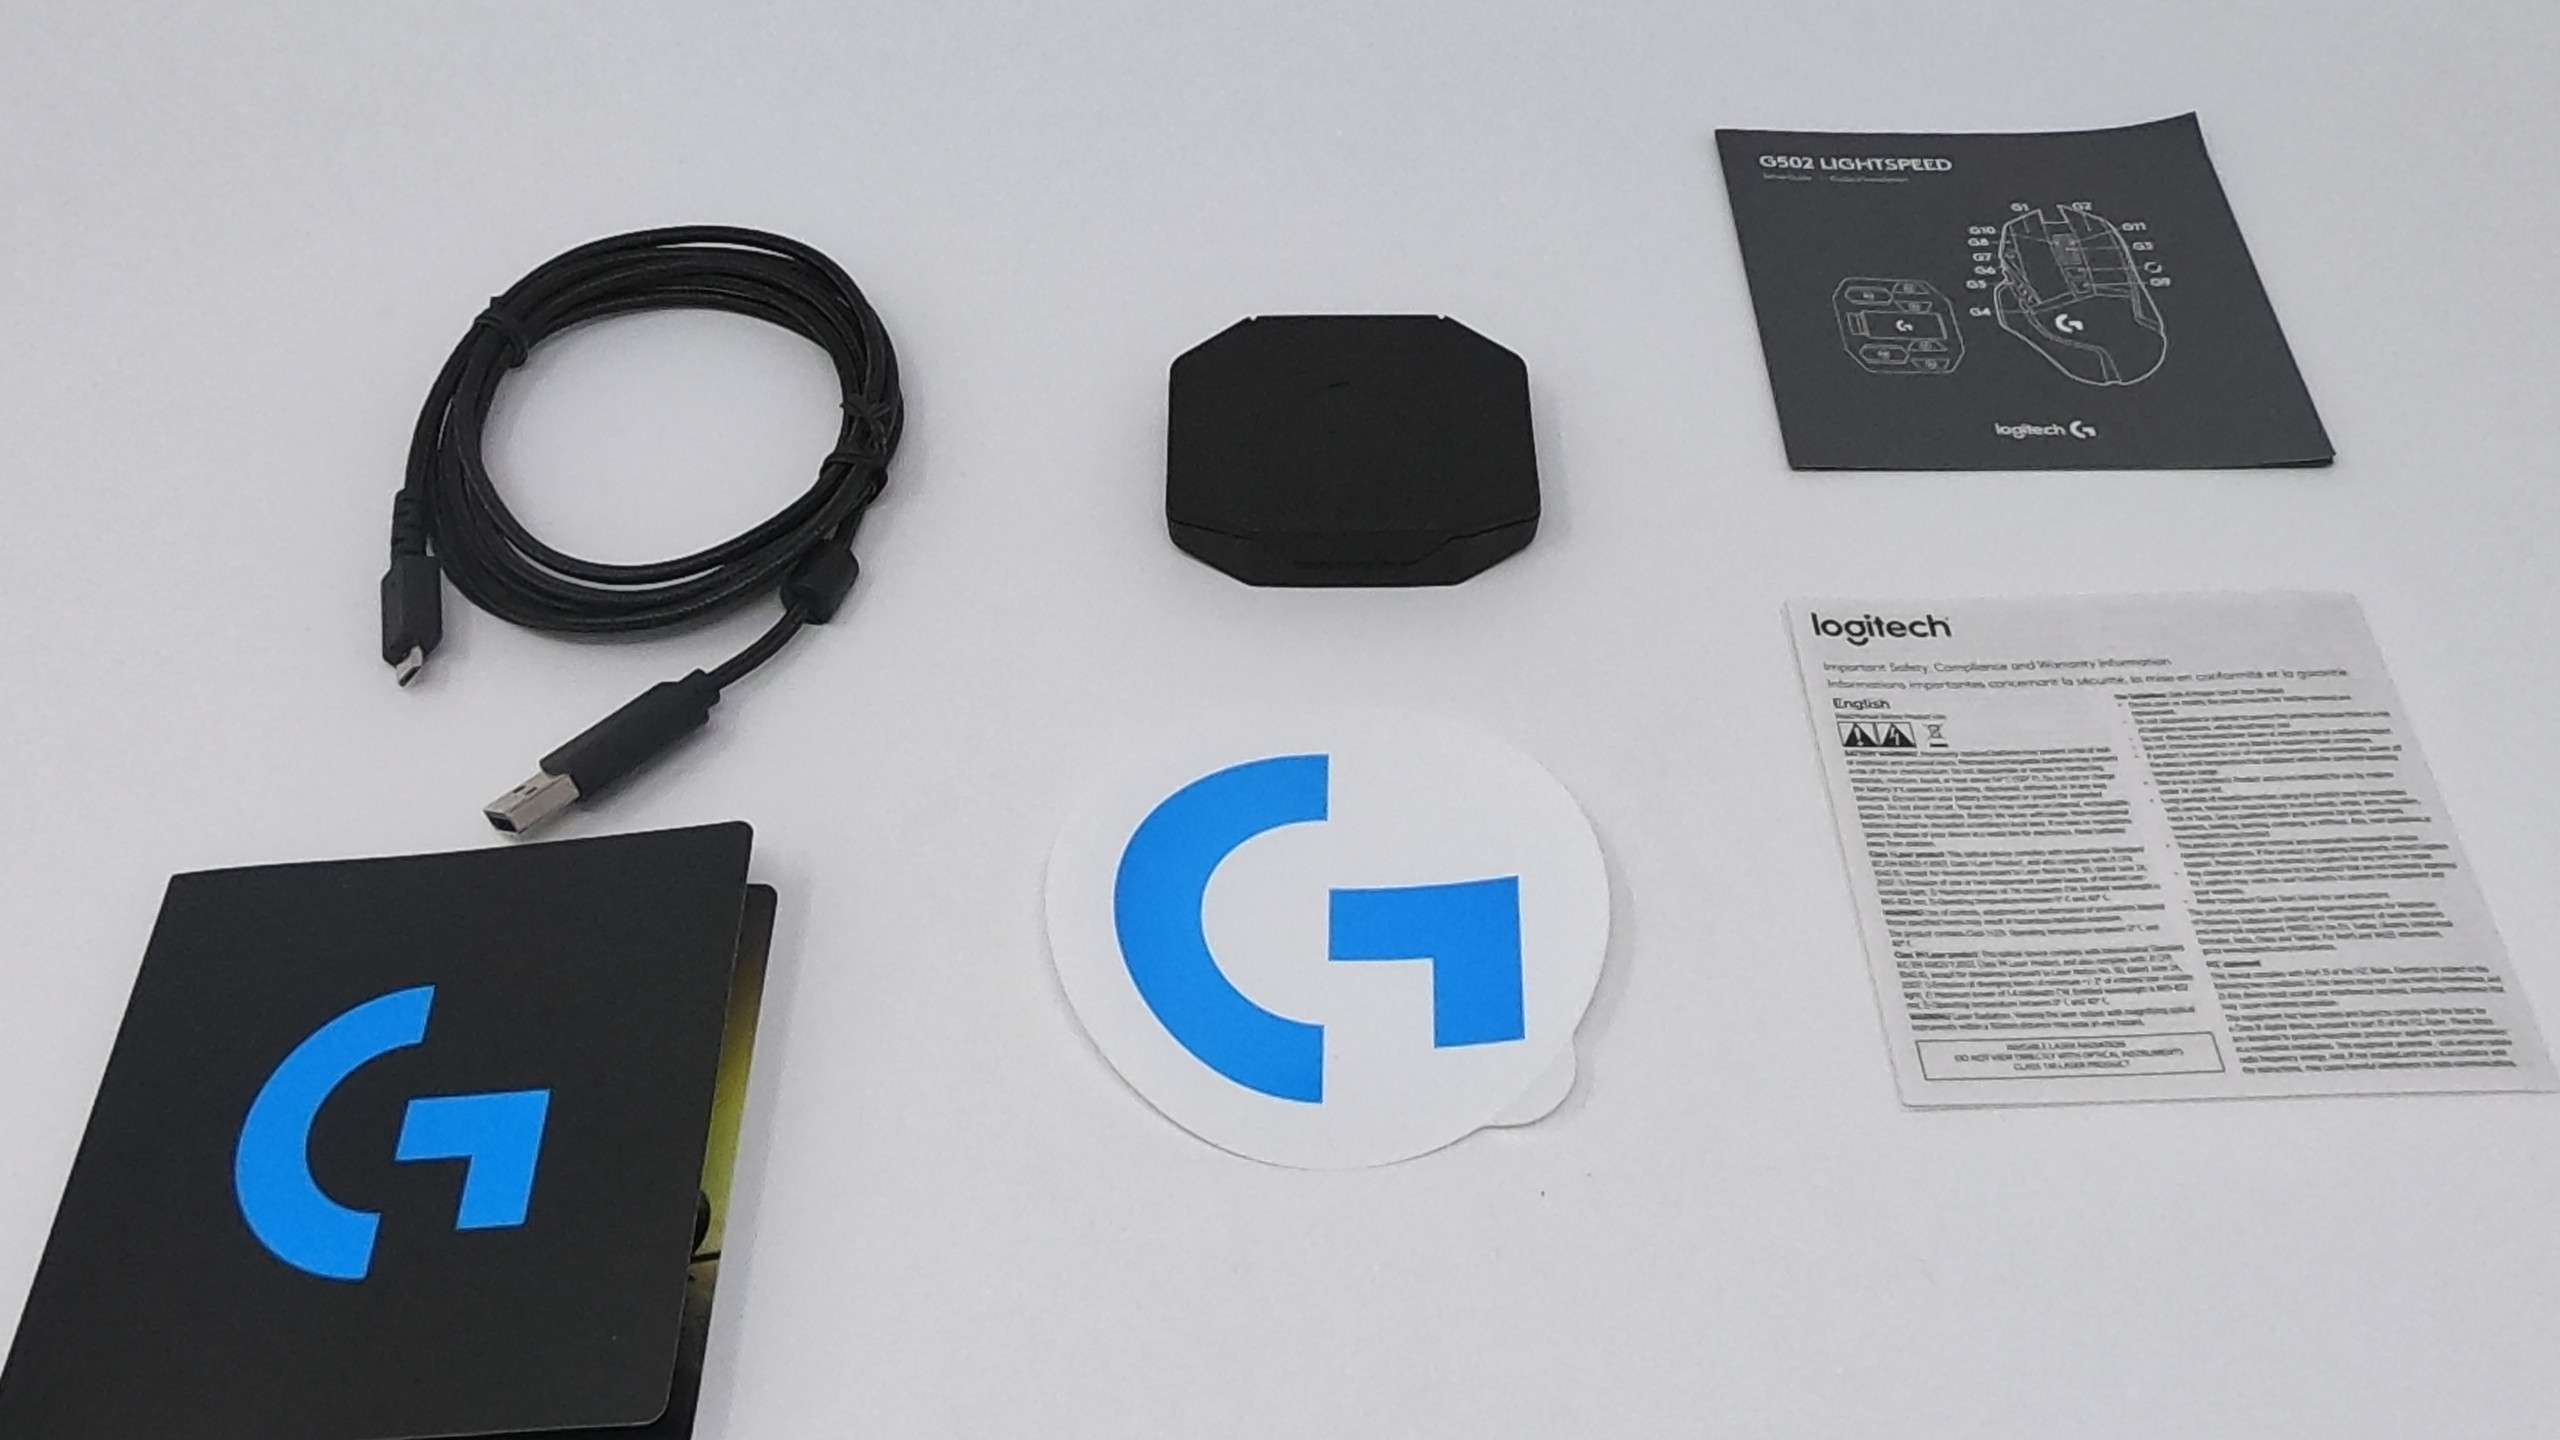 Logitech G502 Wireless, USB Cable, Weights, G Sticker, Manual